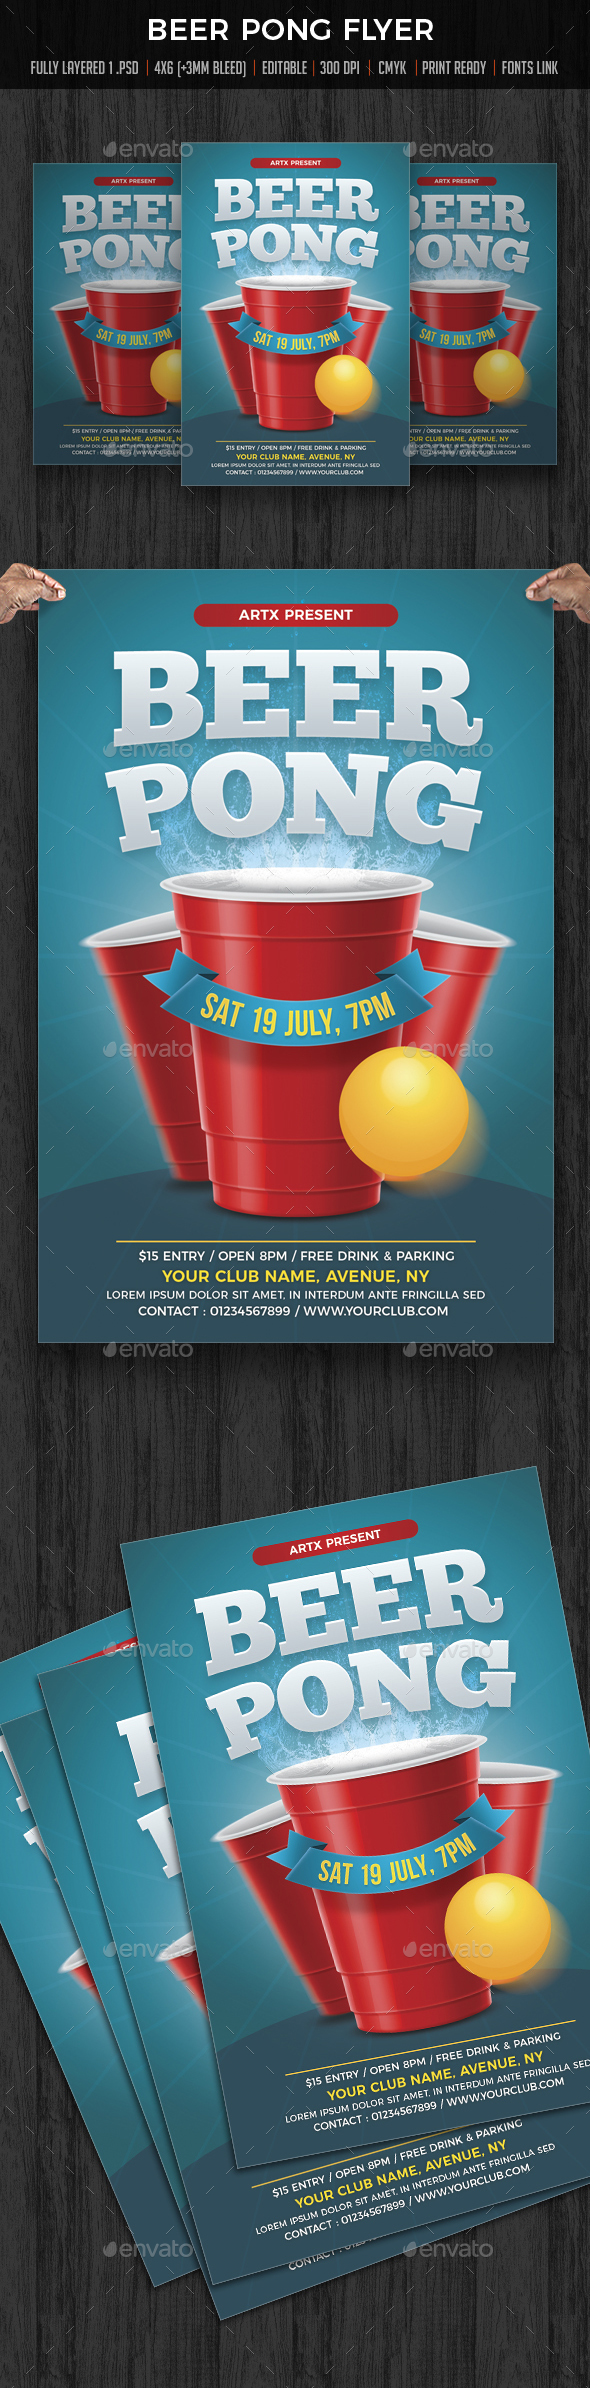 Beer Pong / Beer Party Flyer - Clubs & Parties Events